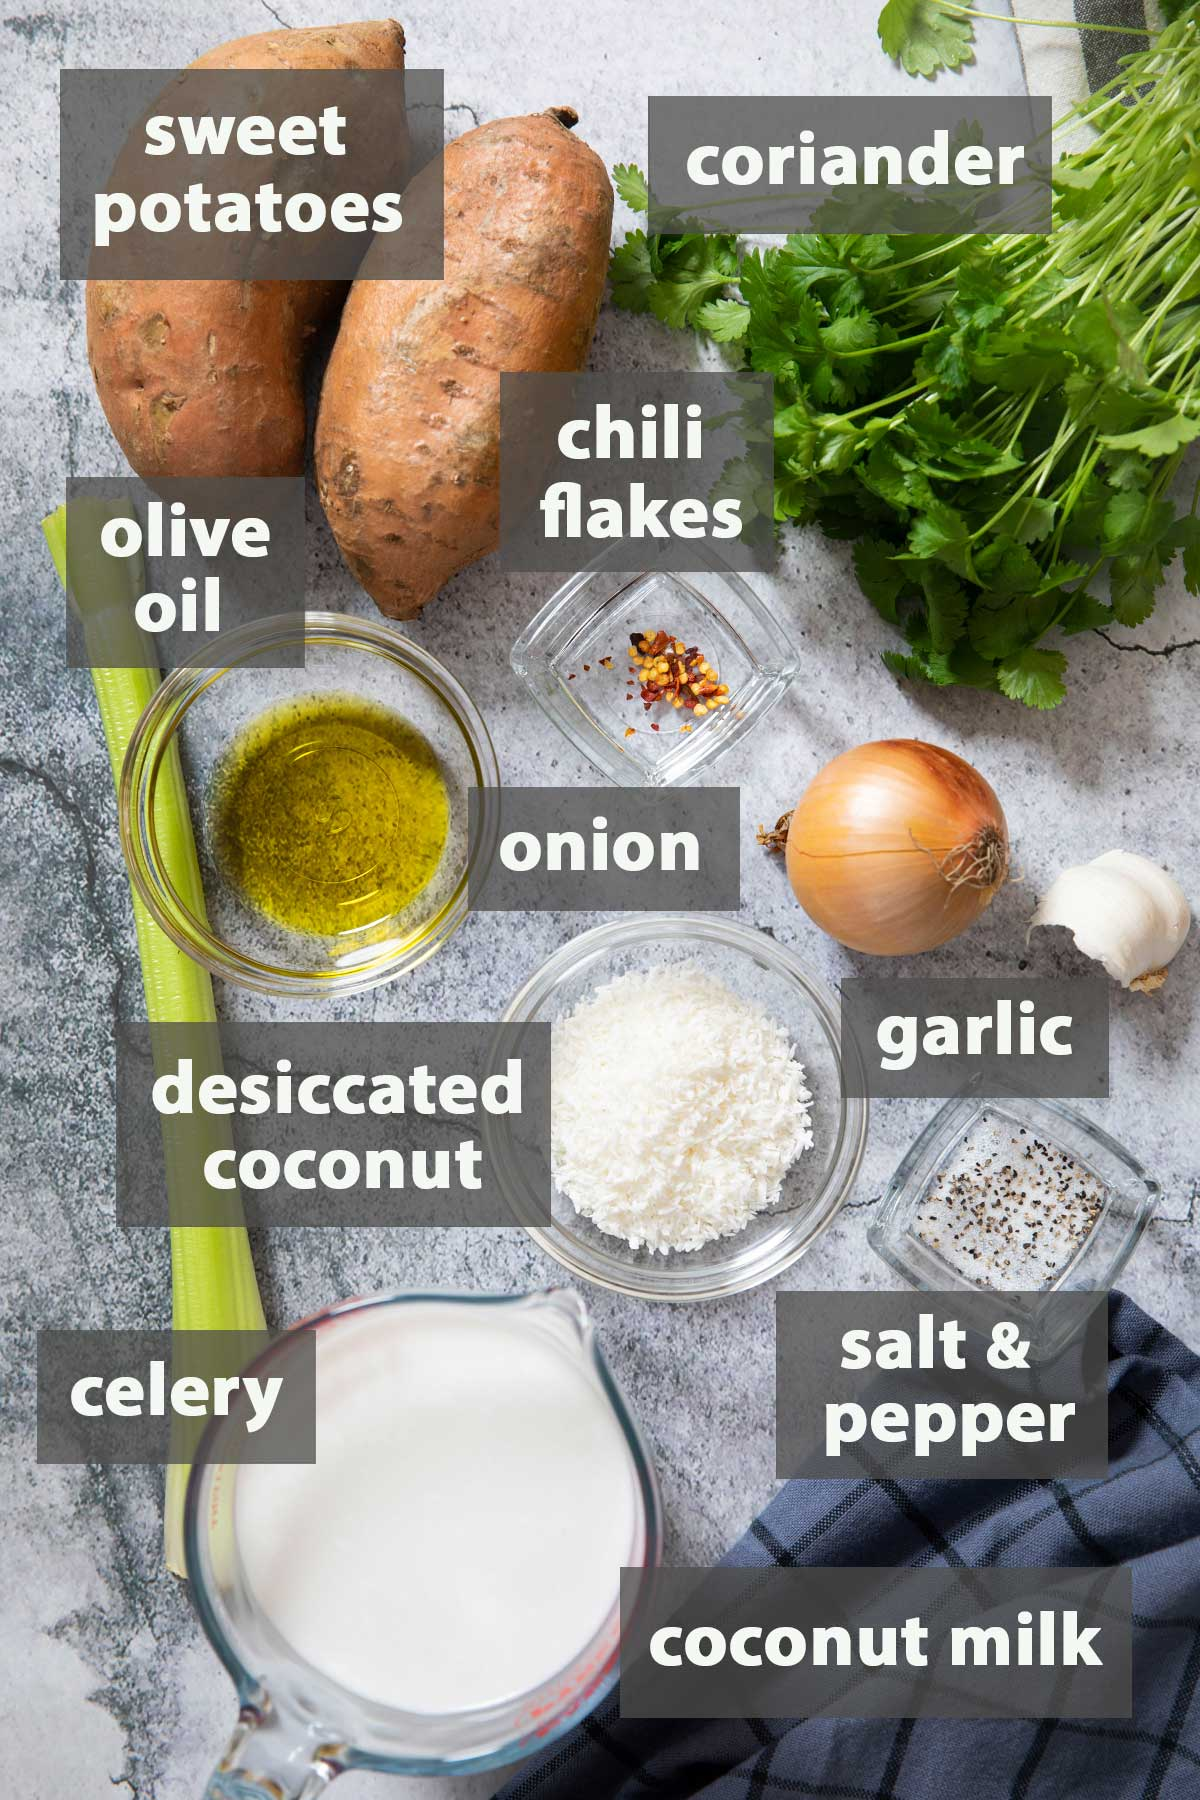 An image showing all the ingredients that you need to prepare creamy Sweet Potato Coconut Soup.